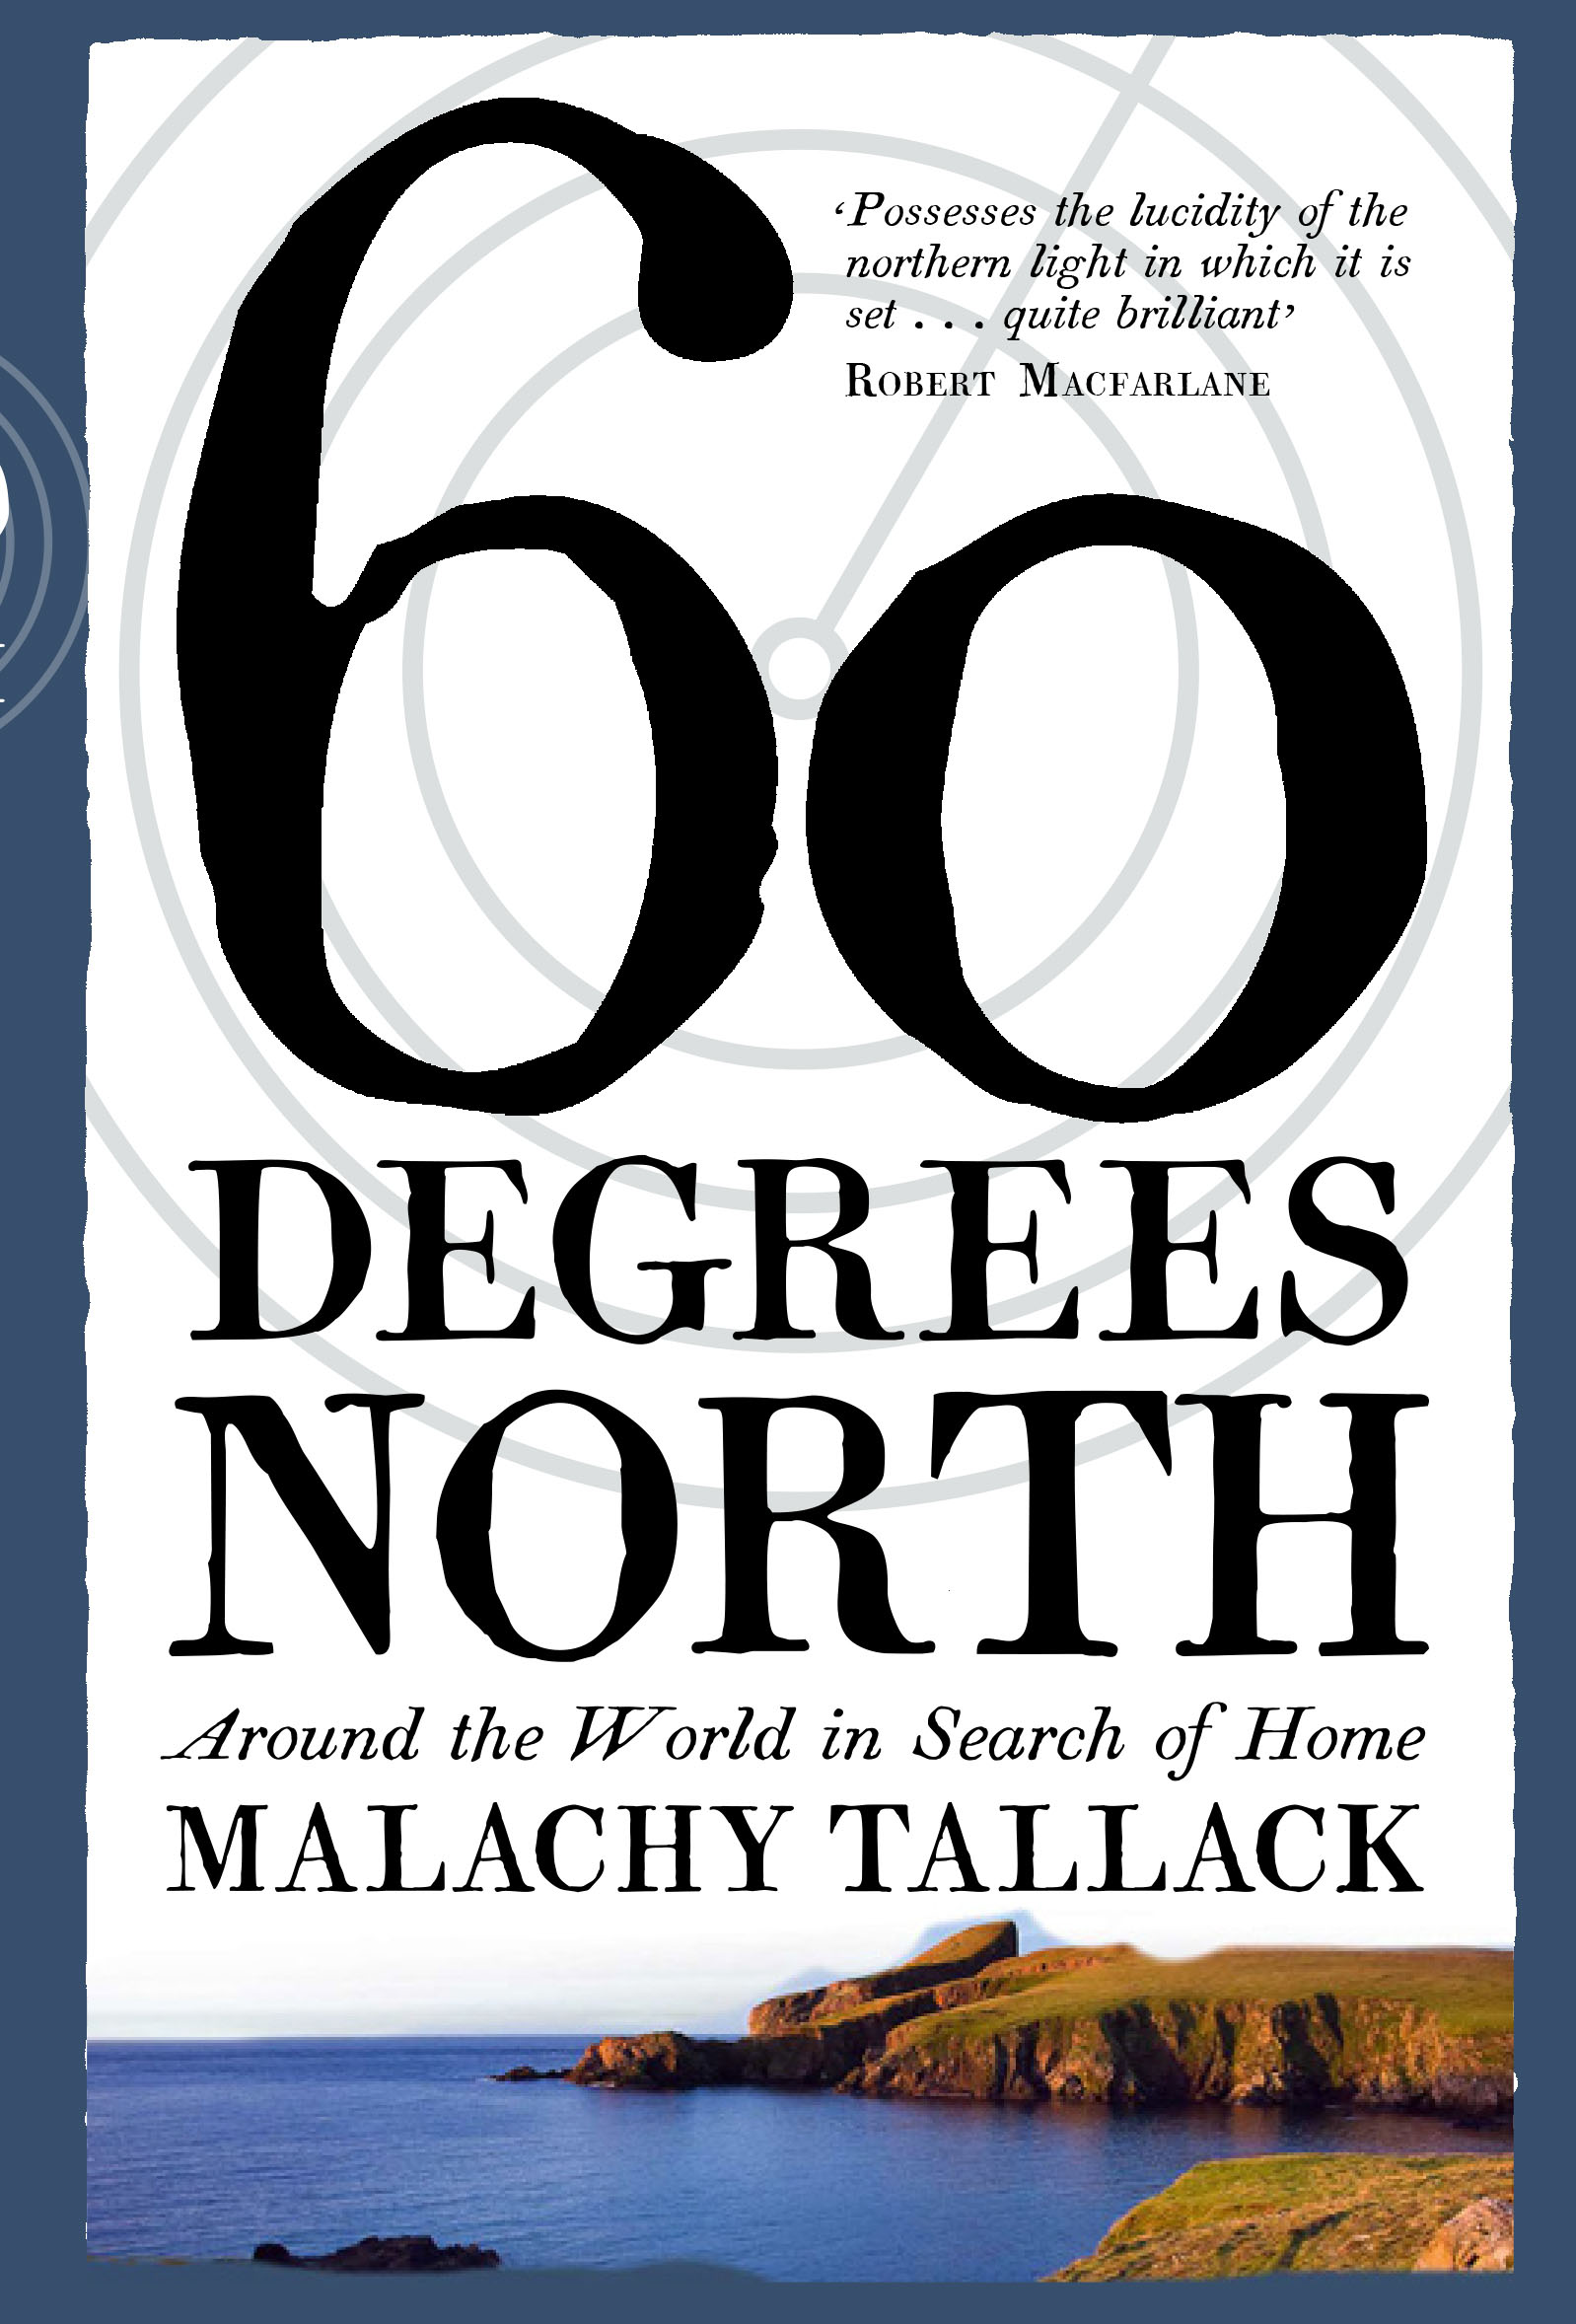 60 degrees north malachy Tallack book cover